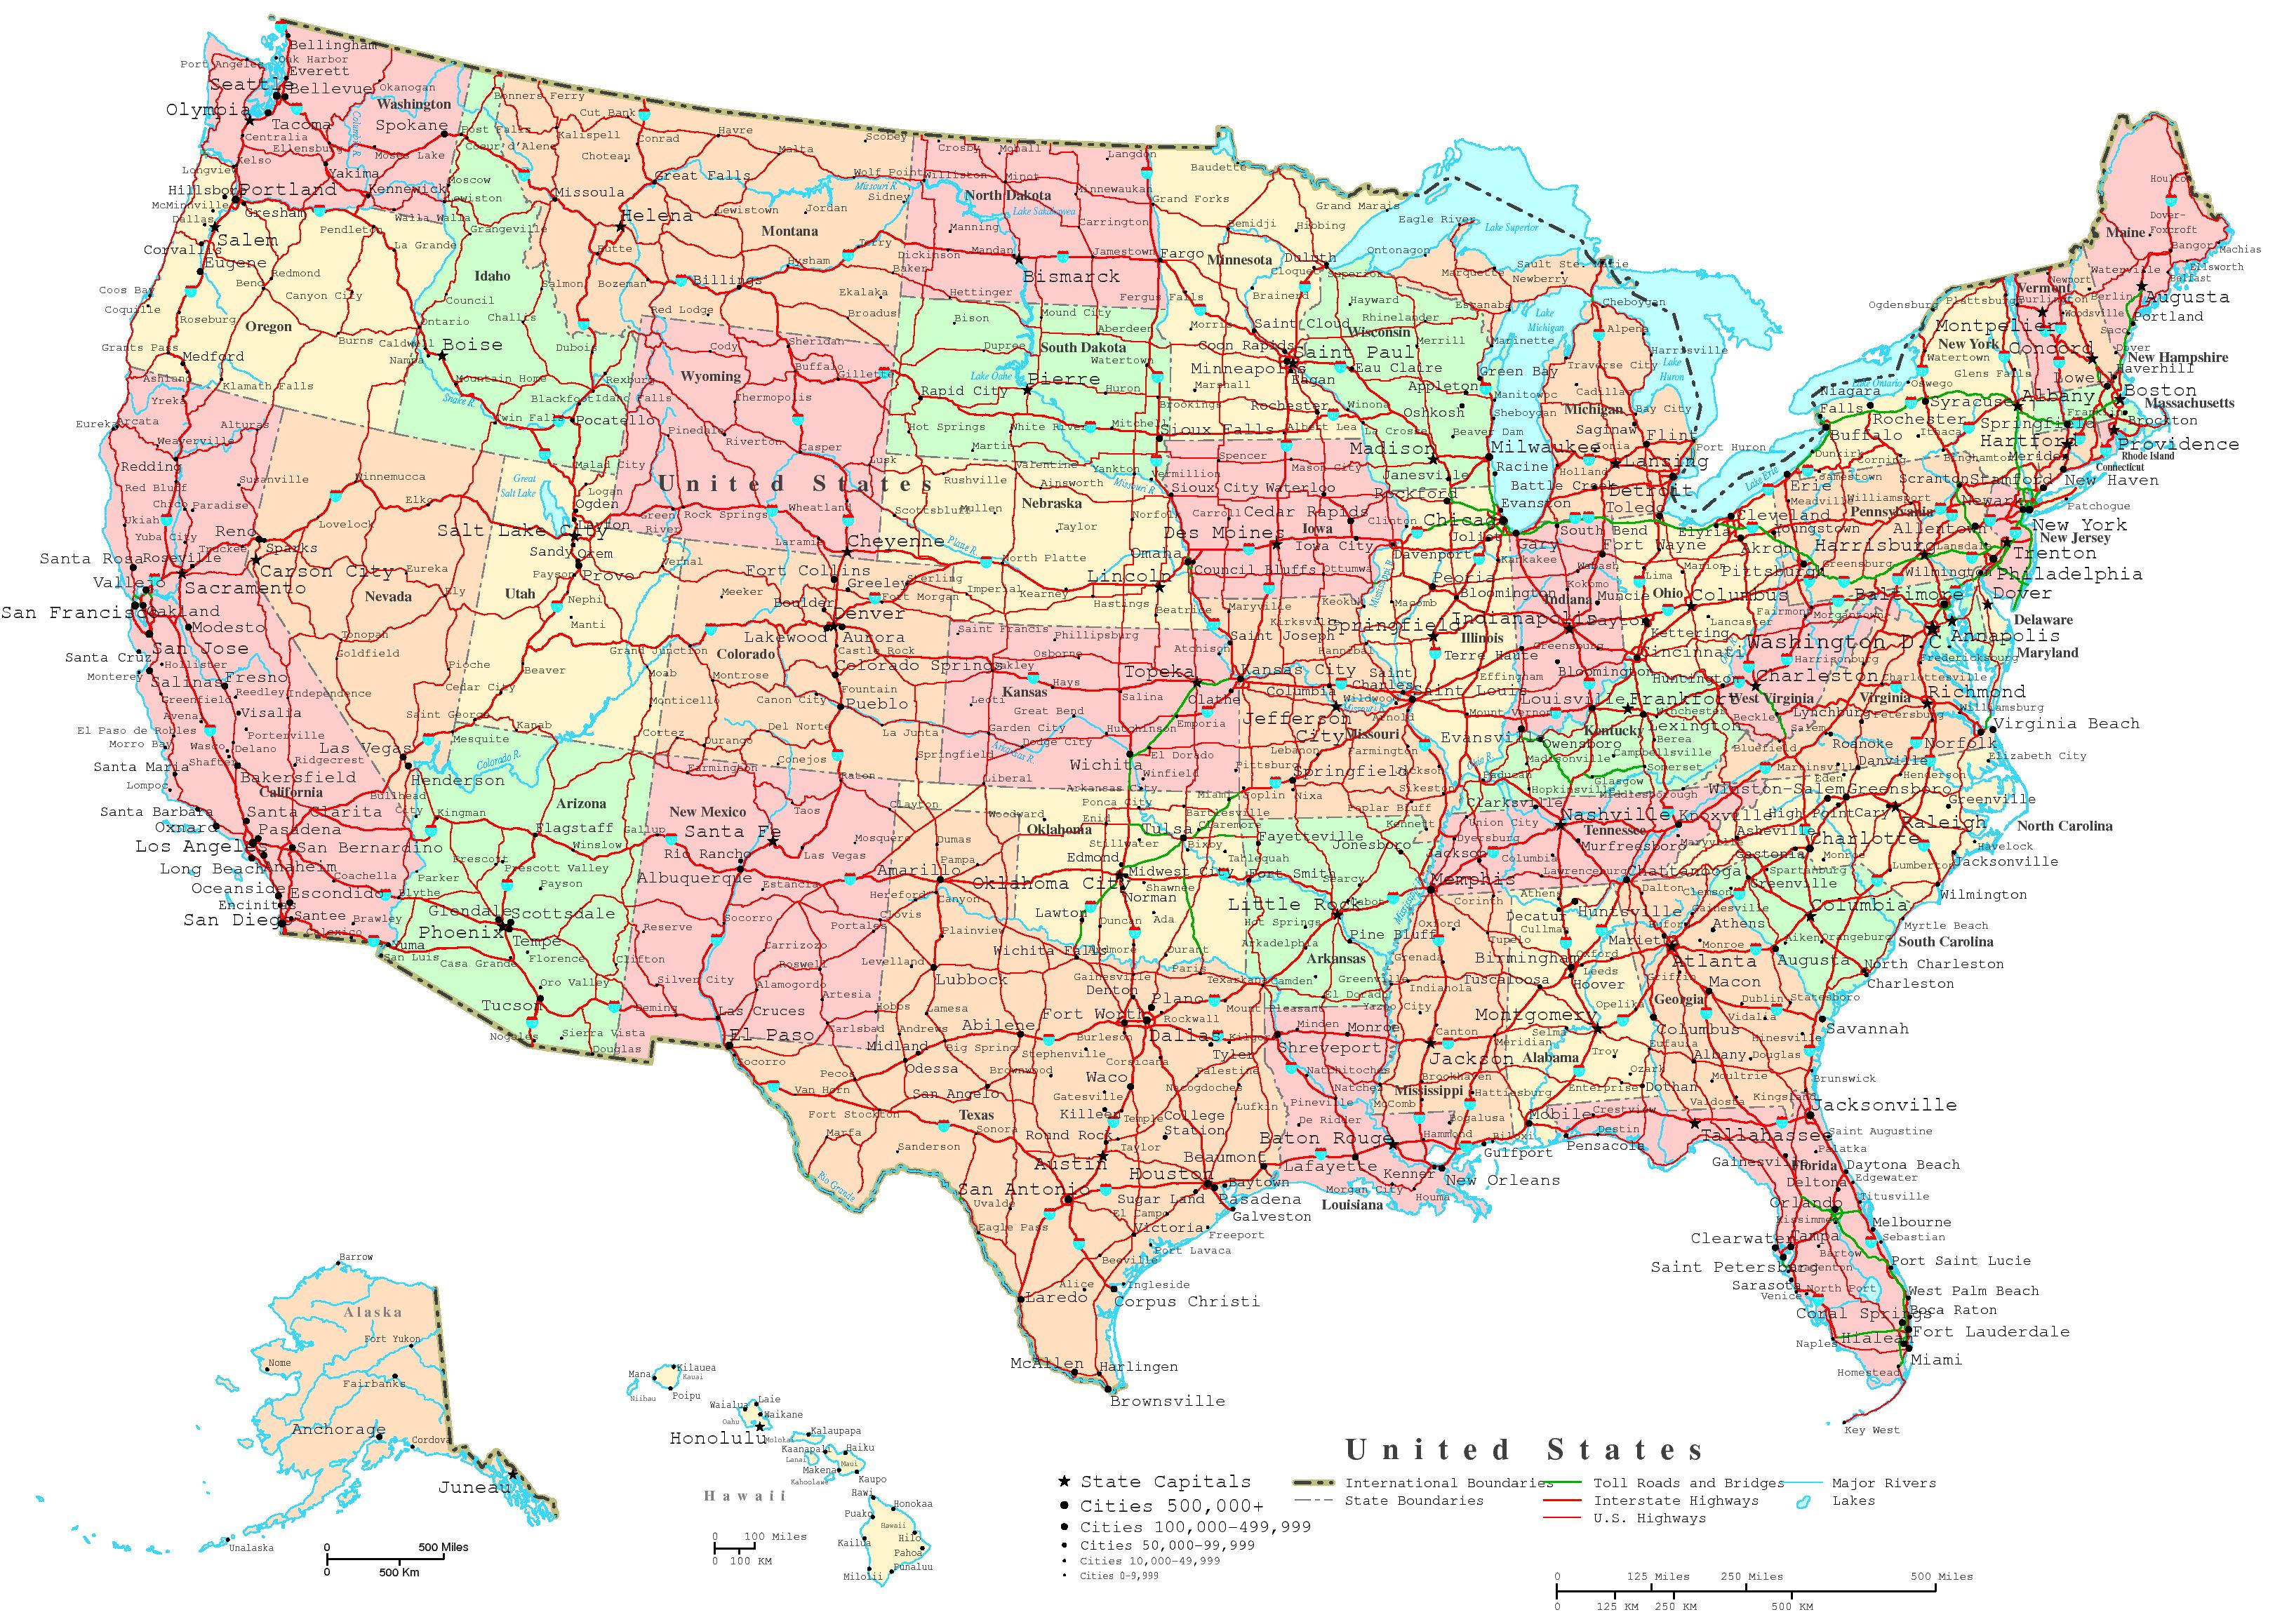 United States Printable Map - Free Printable Map Of United States With States Labeled